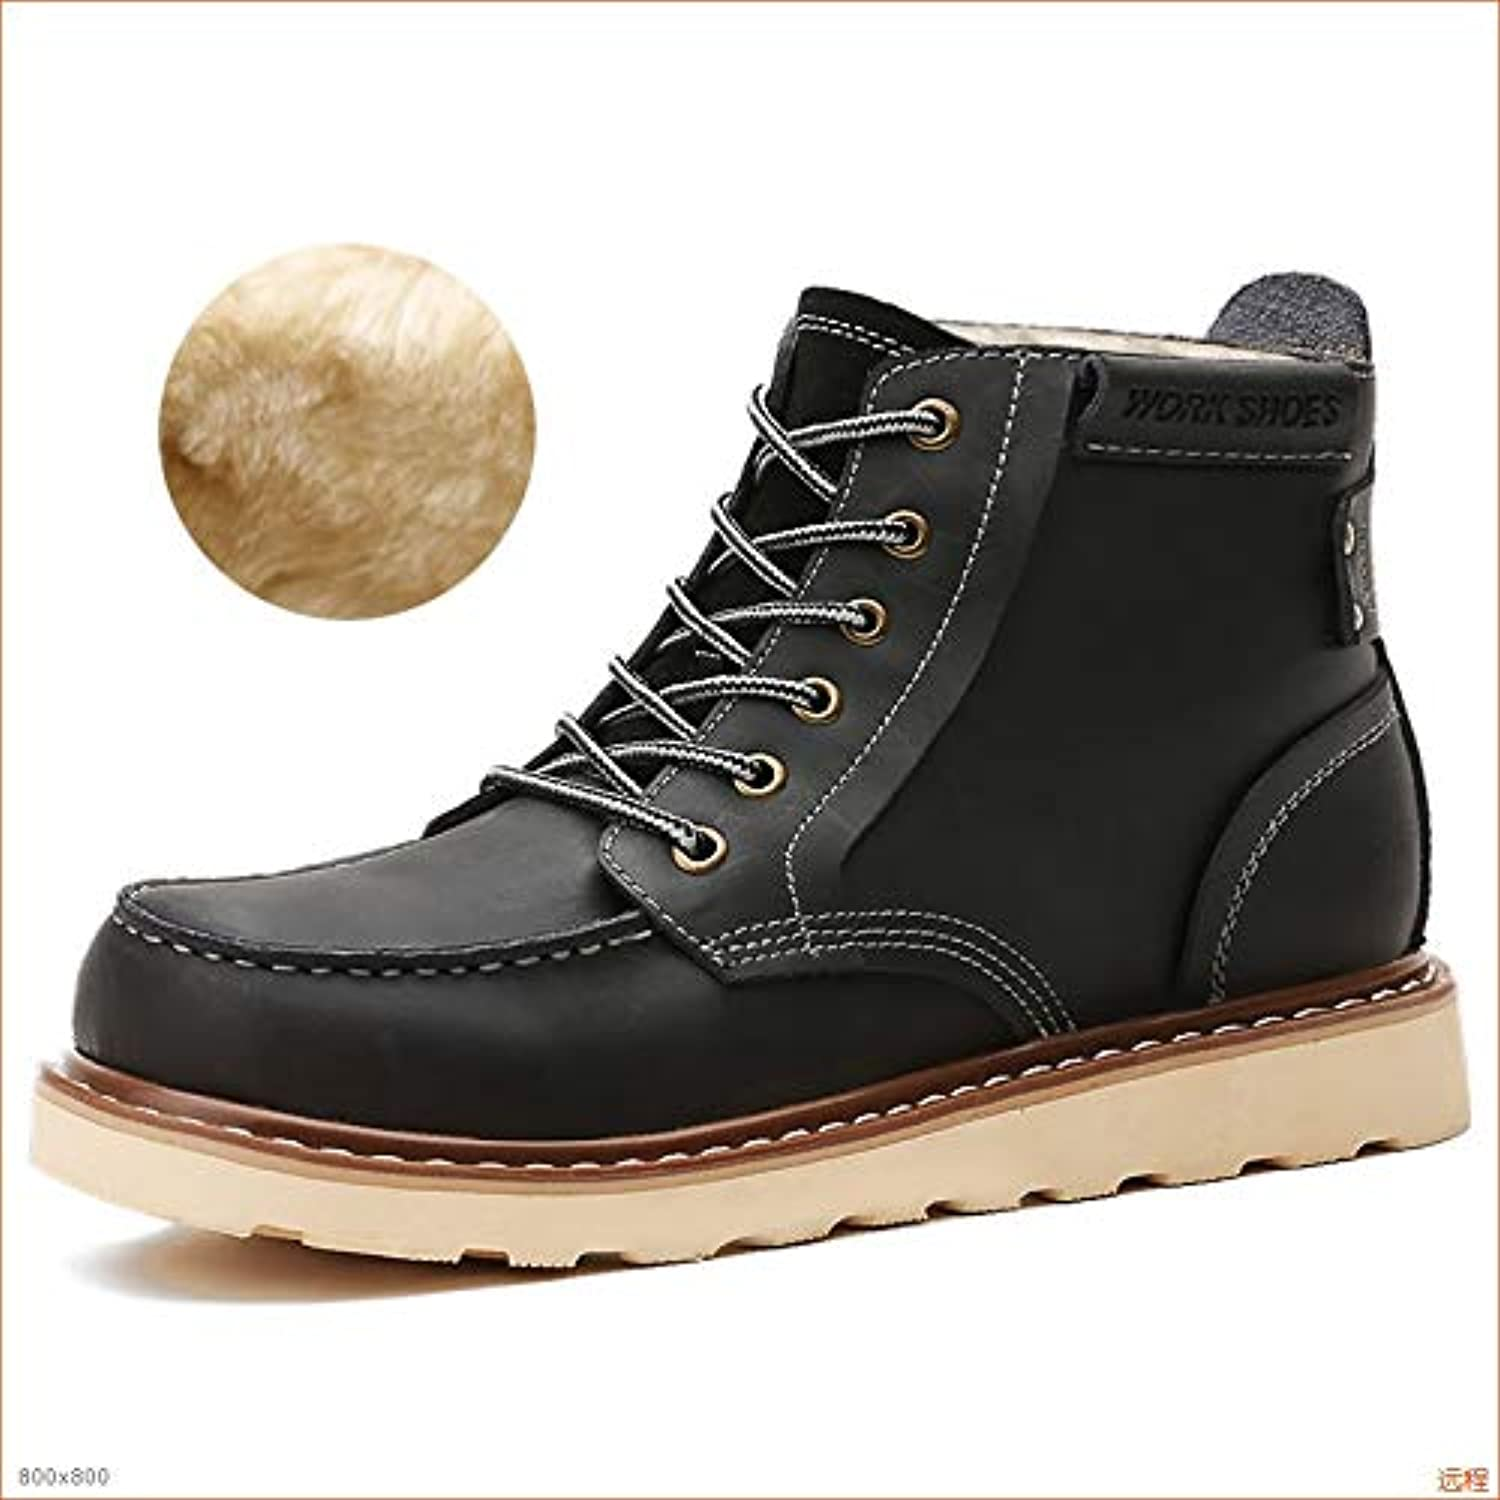 Hucusd Wear-Resistant Men's Fashion and Sturdy Work Boots Casual Thickening and Anti-Collision Toe high Boots Comfortable